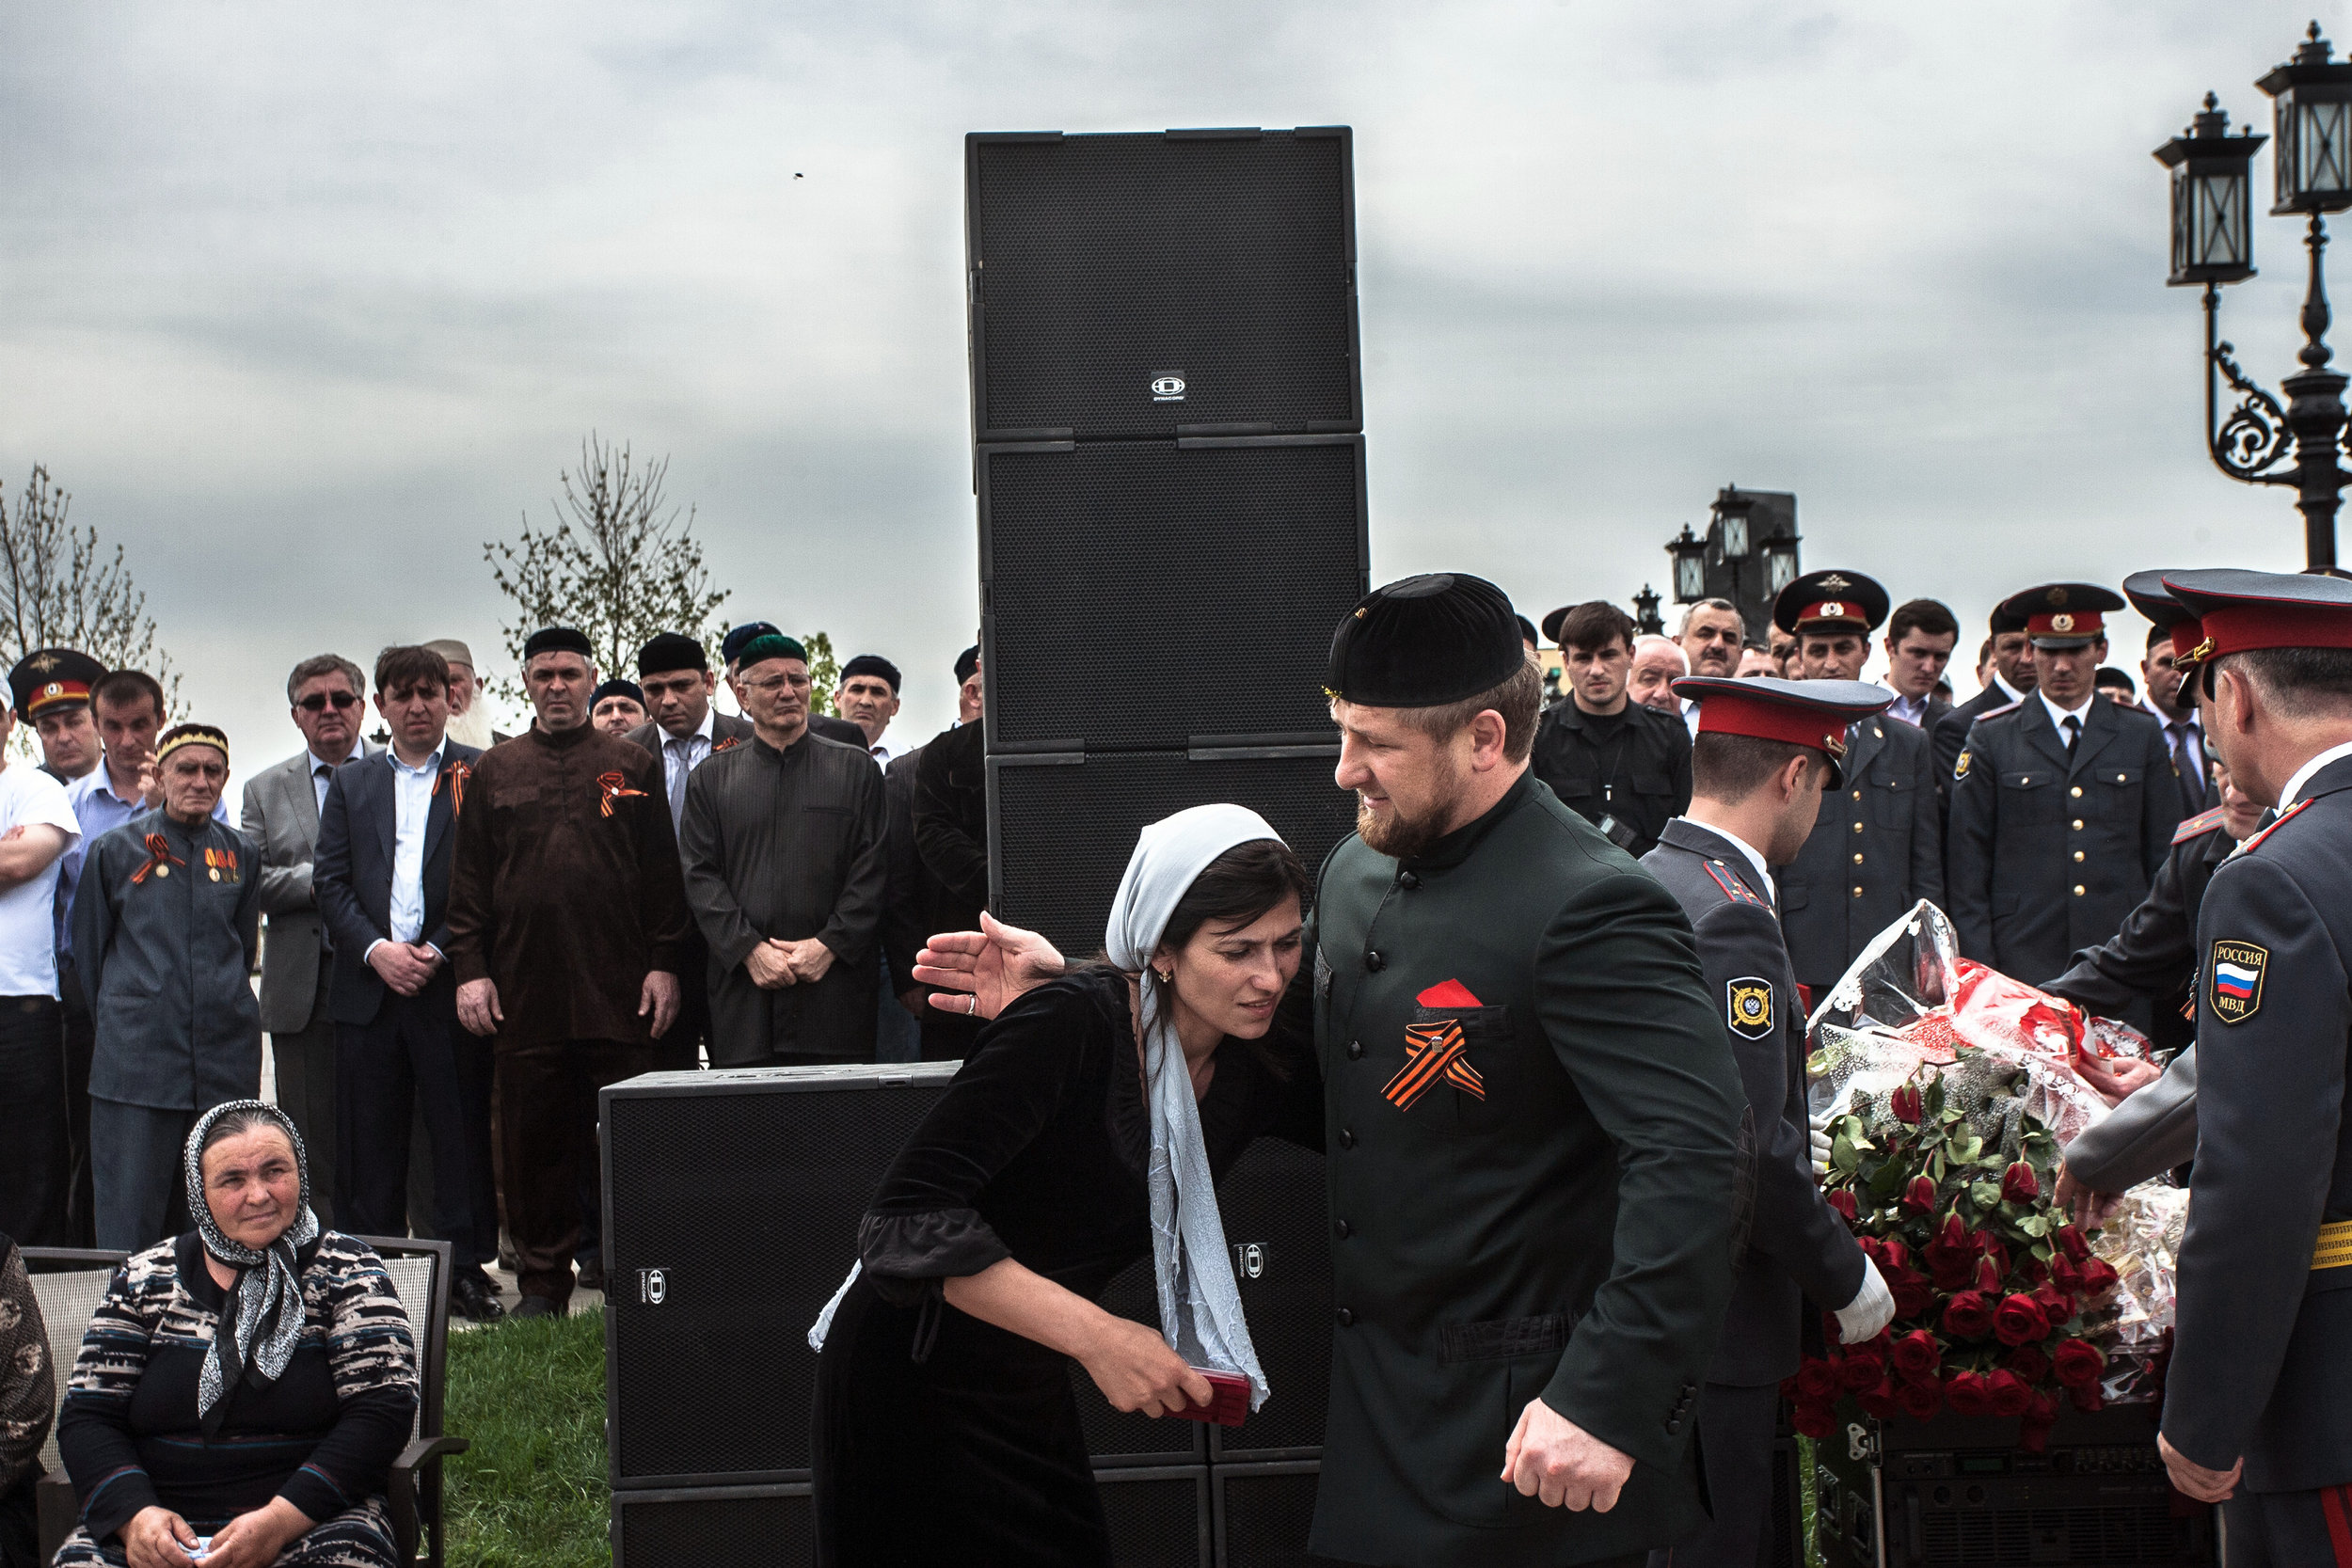 Russia, Chechnya, Grozny, 9 May 2010. Ramzan Kadyrov greets the widow of a policeman killed in clashes with rebels during a parade celebrating the 65th anniversary of Soviet victory in World War II